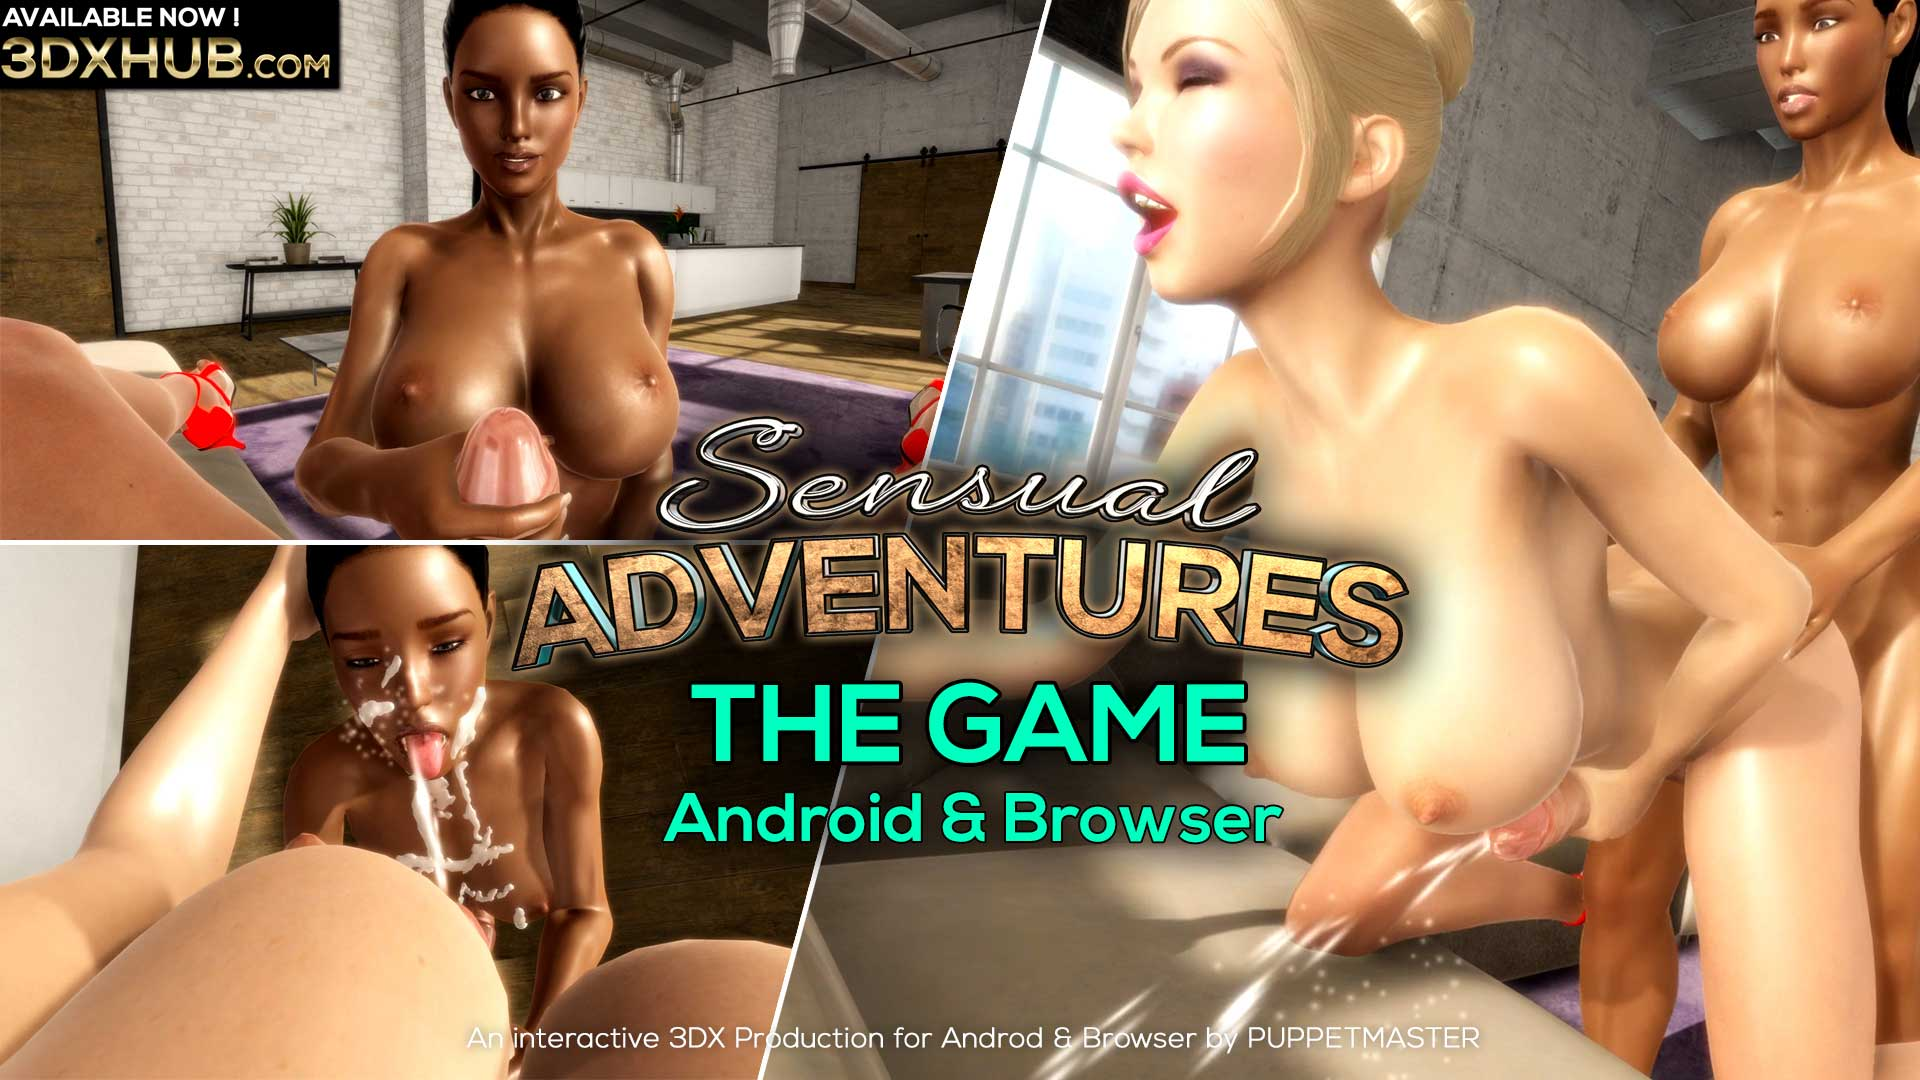 Sensual Adventures - The Game (Android & Browser)